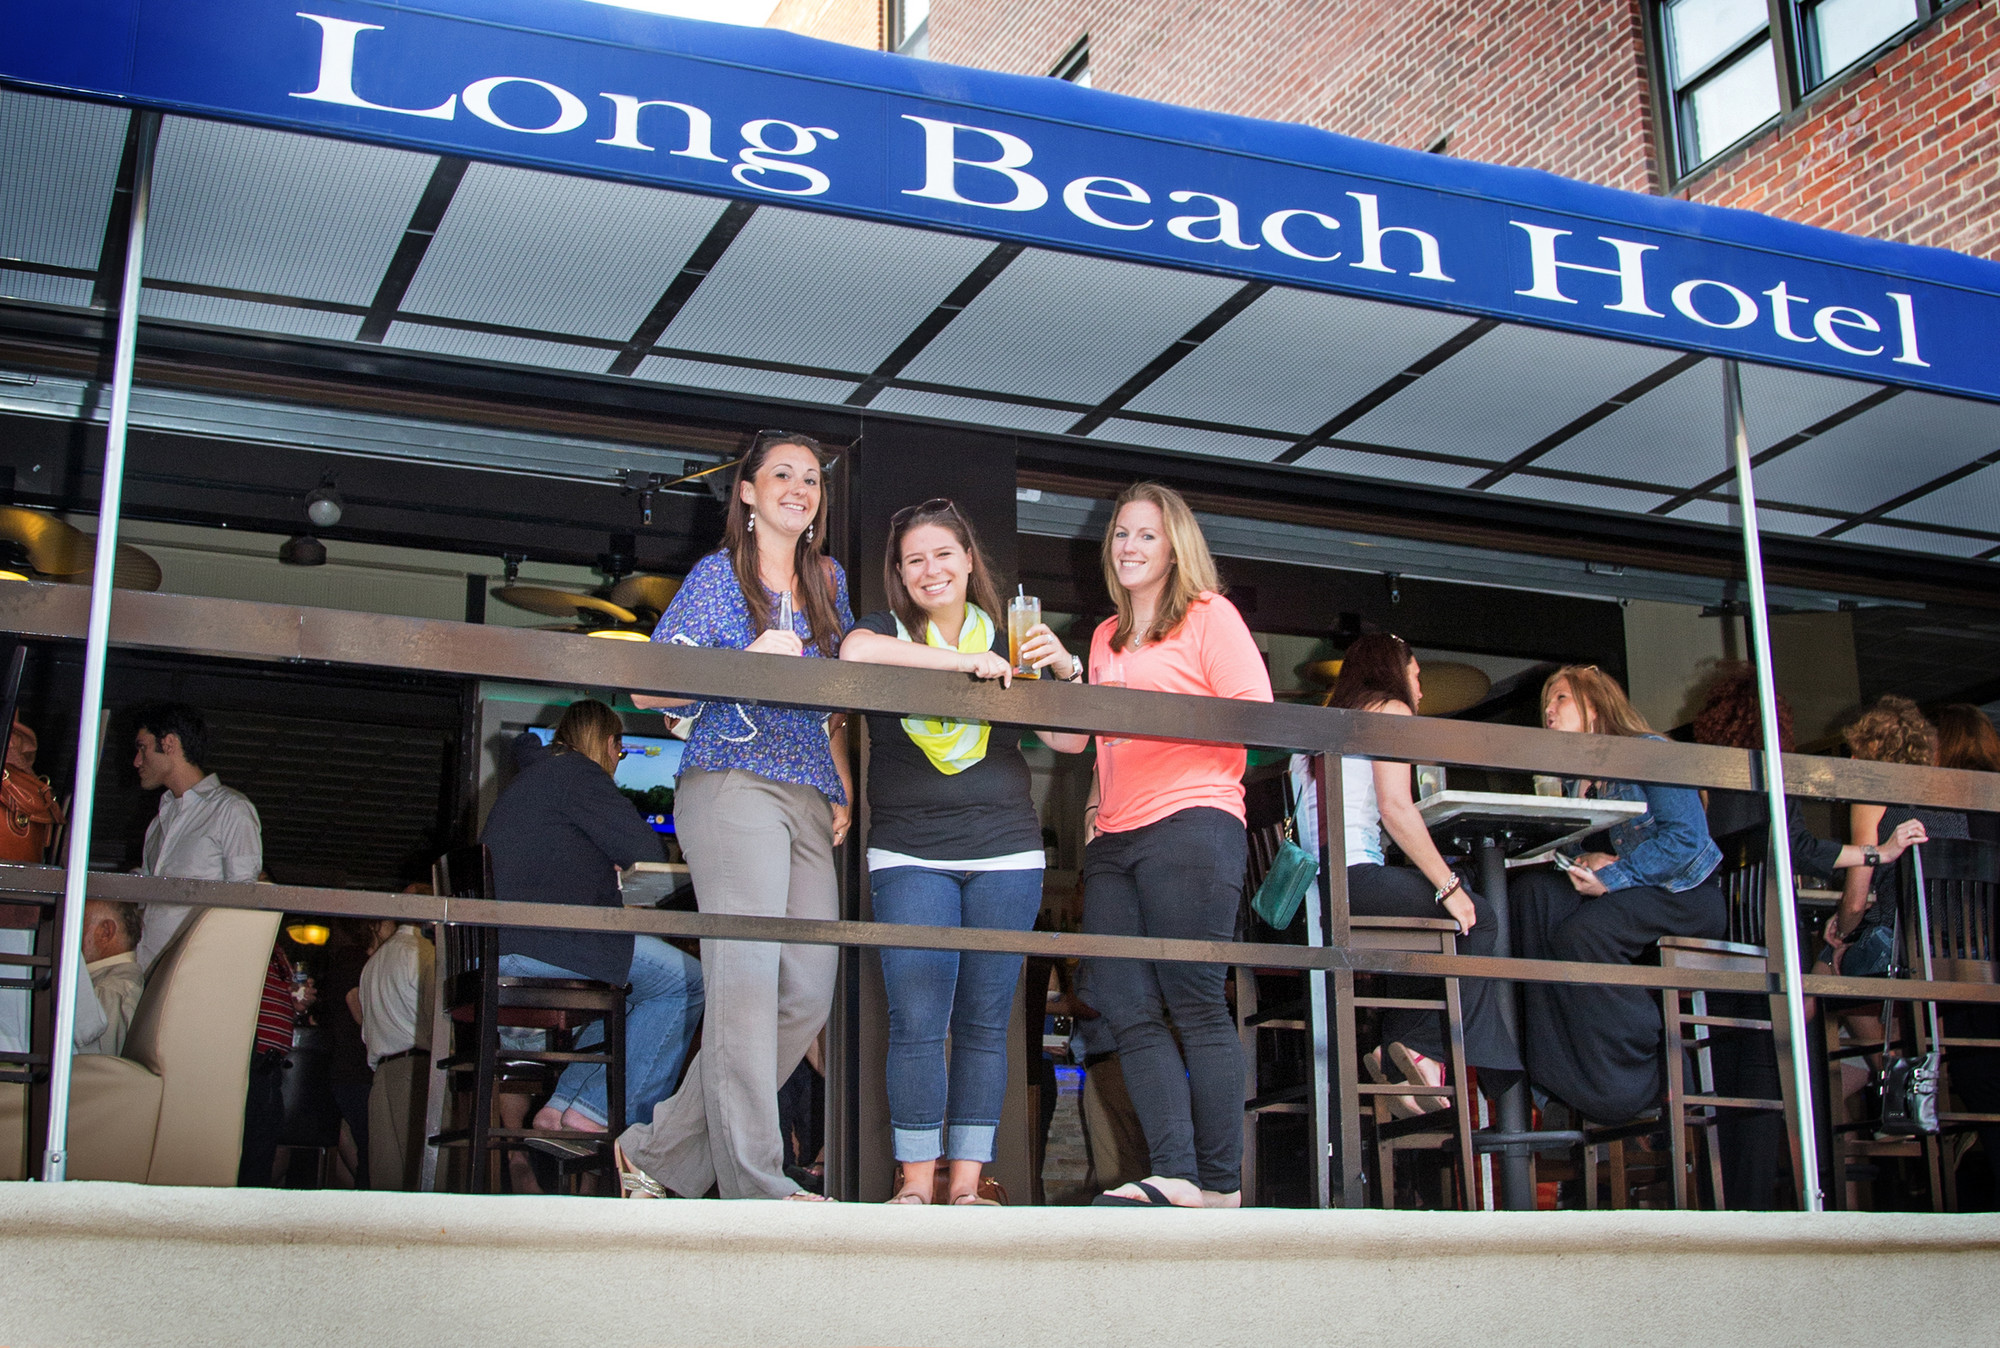 Ann Marie Morovich, left, Lauren Rapkin and Christine Morovich at the hotel's new bar.